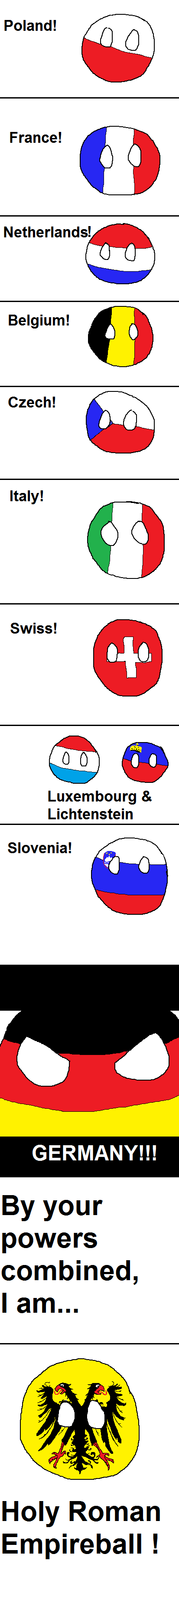 polandball_holy_roman_empire.png